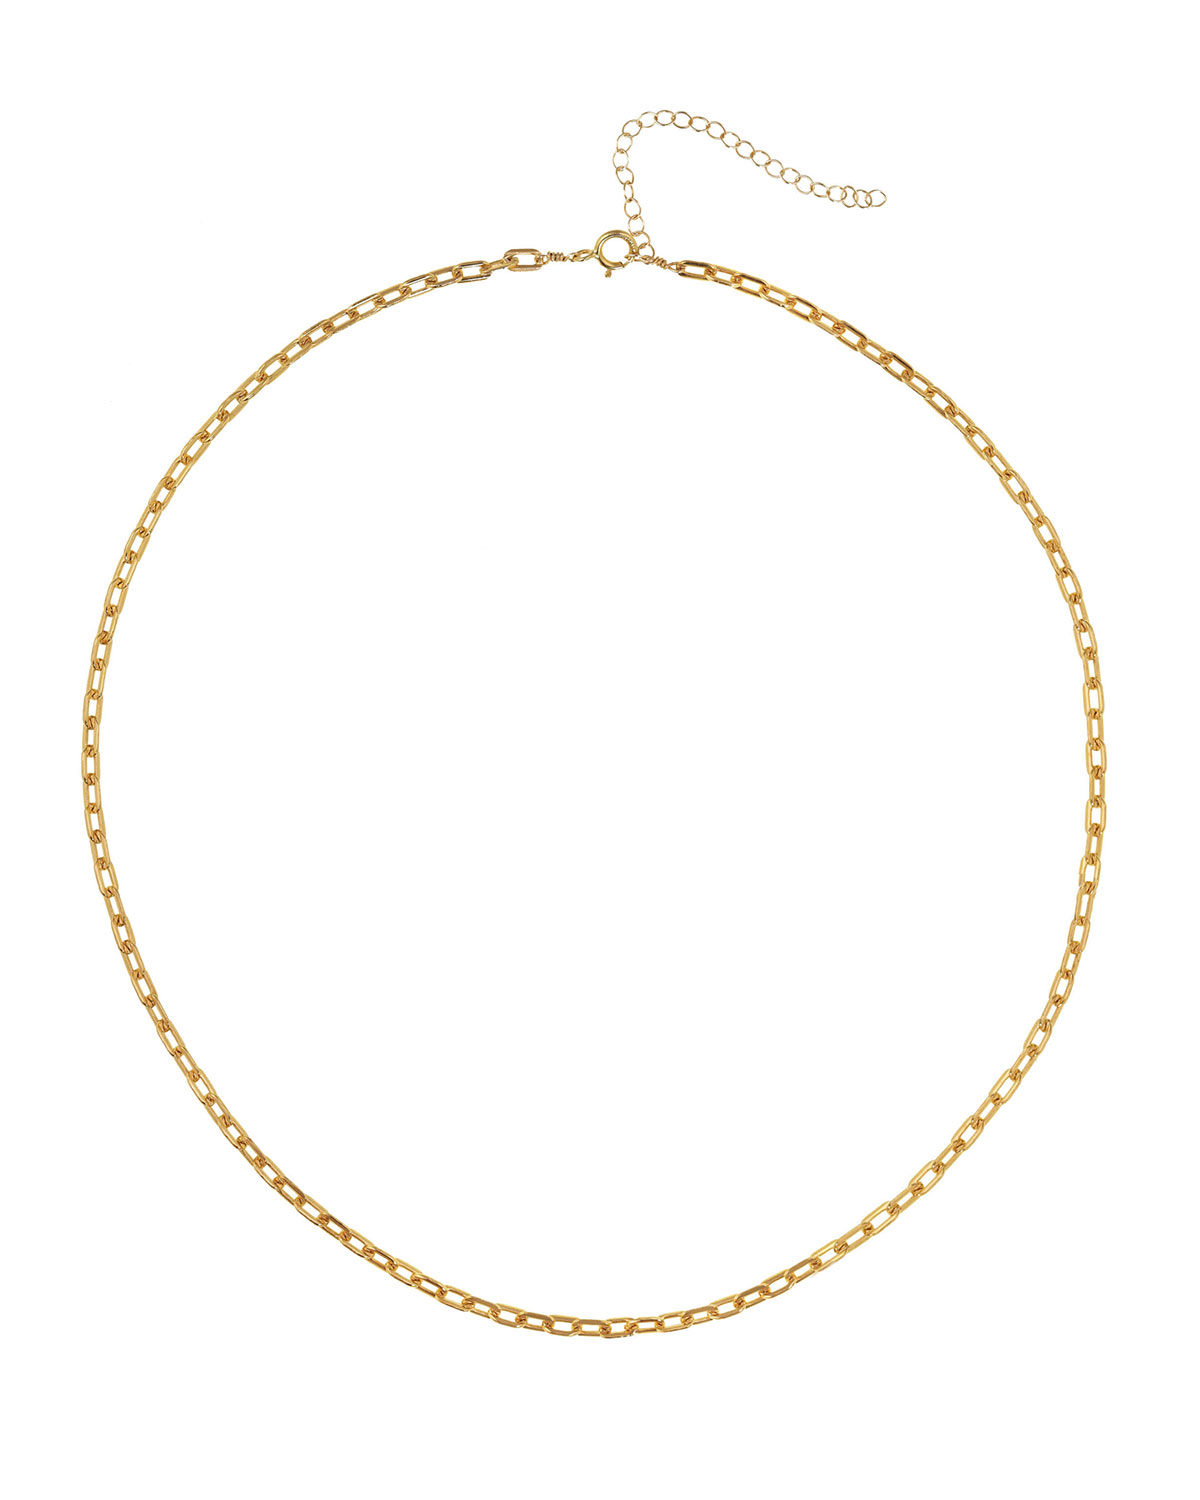 Garla 14k Gold-Filled Chain Necklace